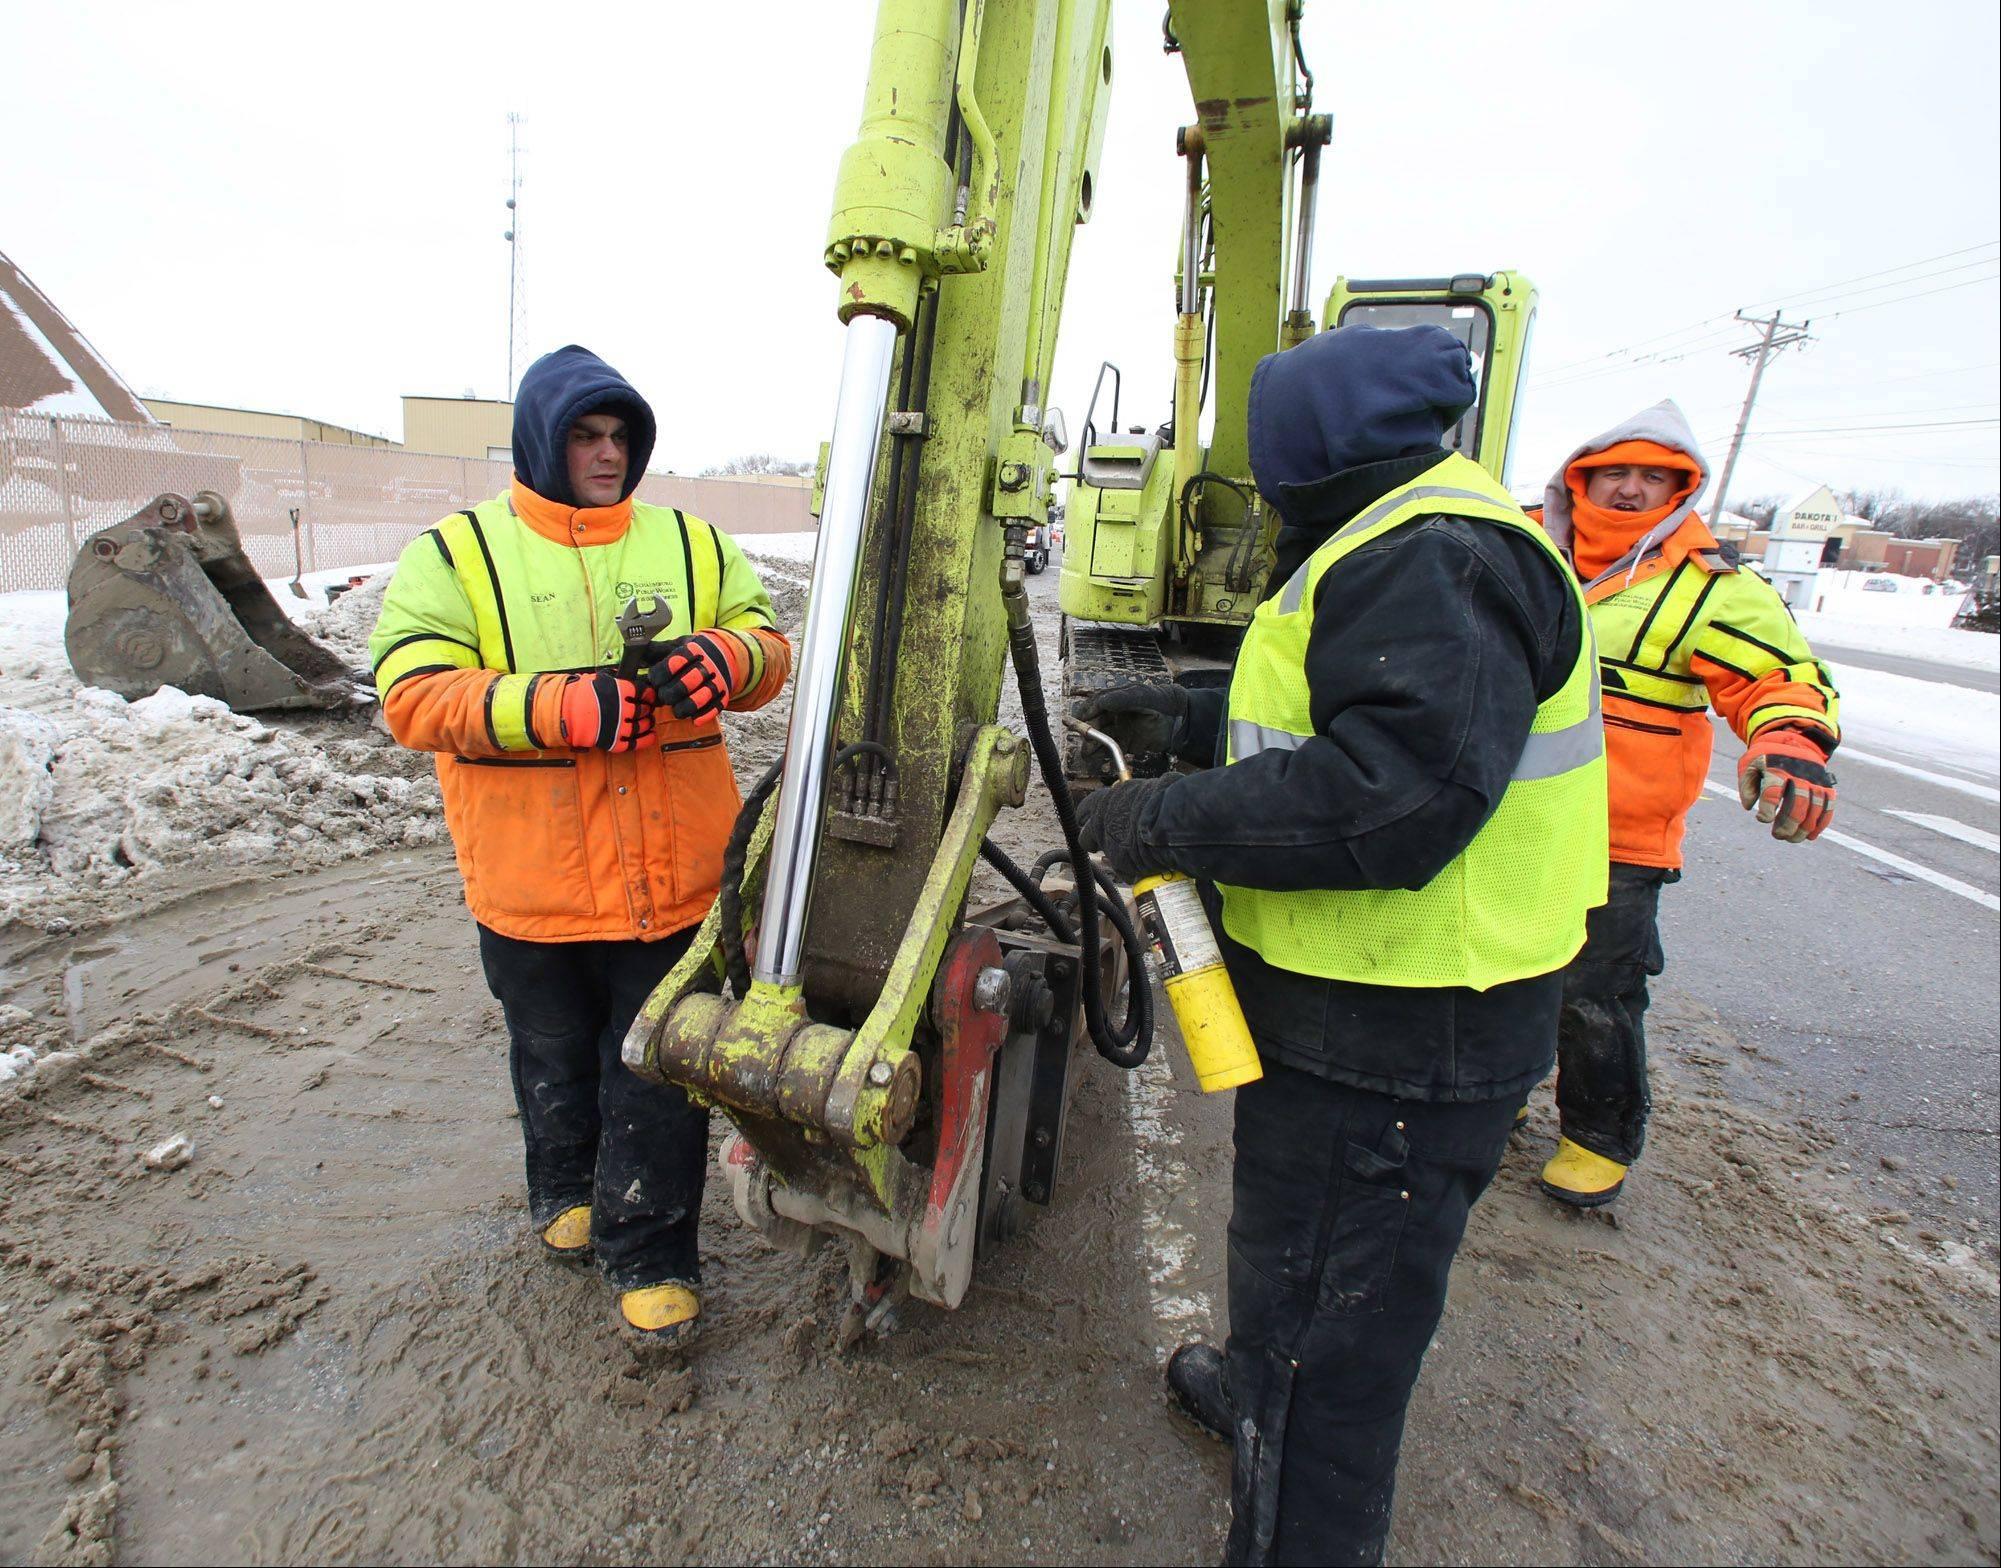 Schaumburg Public Works employees try to unfreeze equipment while digging to expose a water main break at Algonquin and Meacham Roads on Tuesday in Schaumburg.